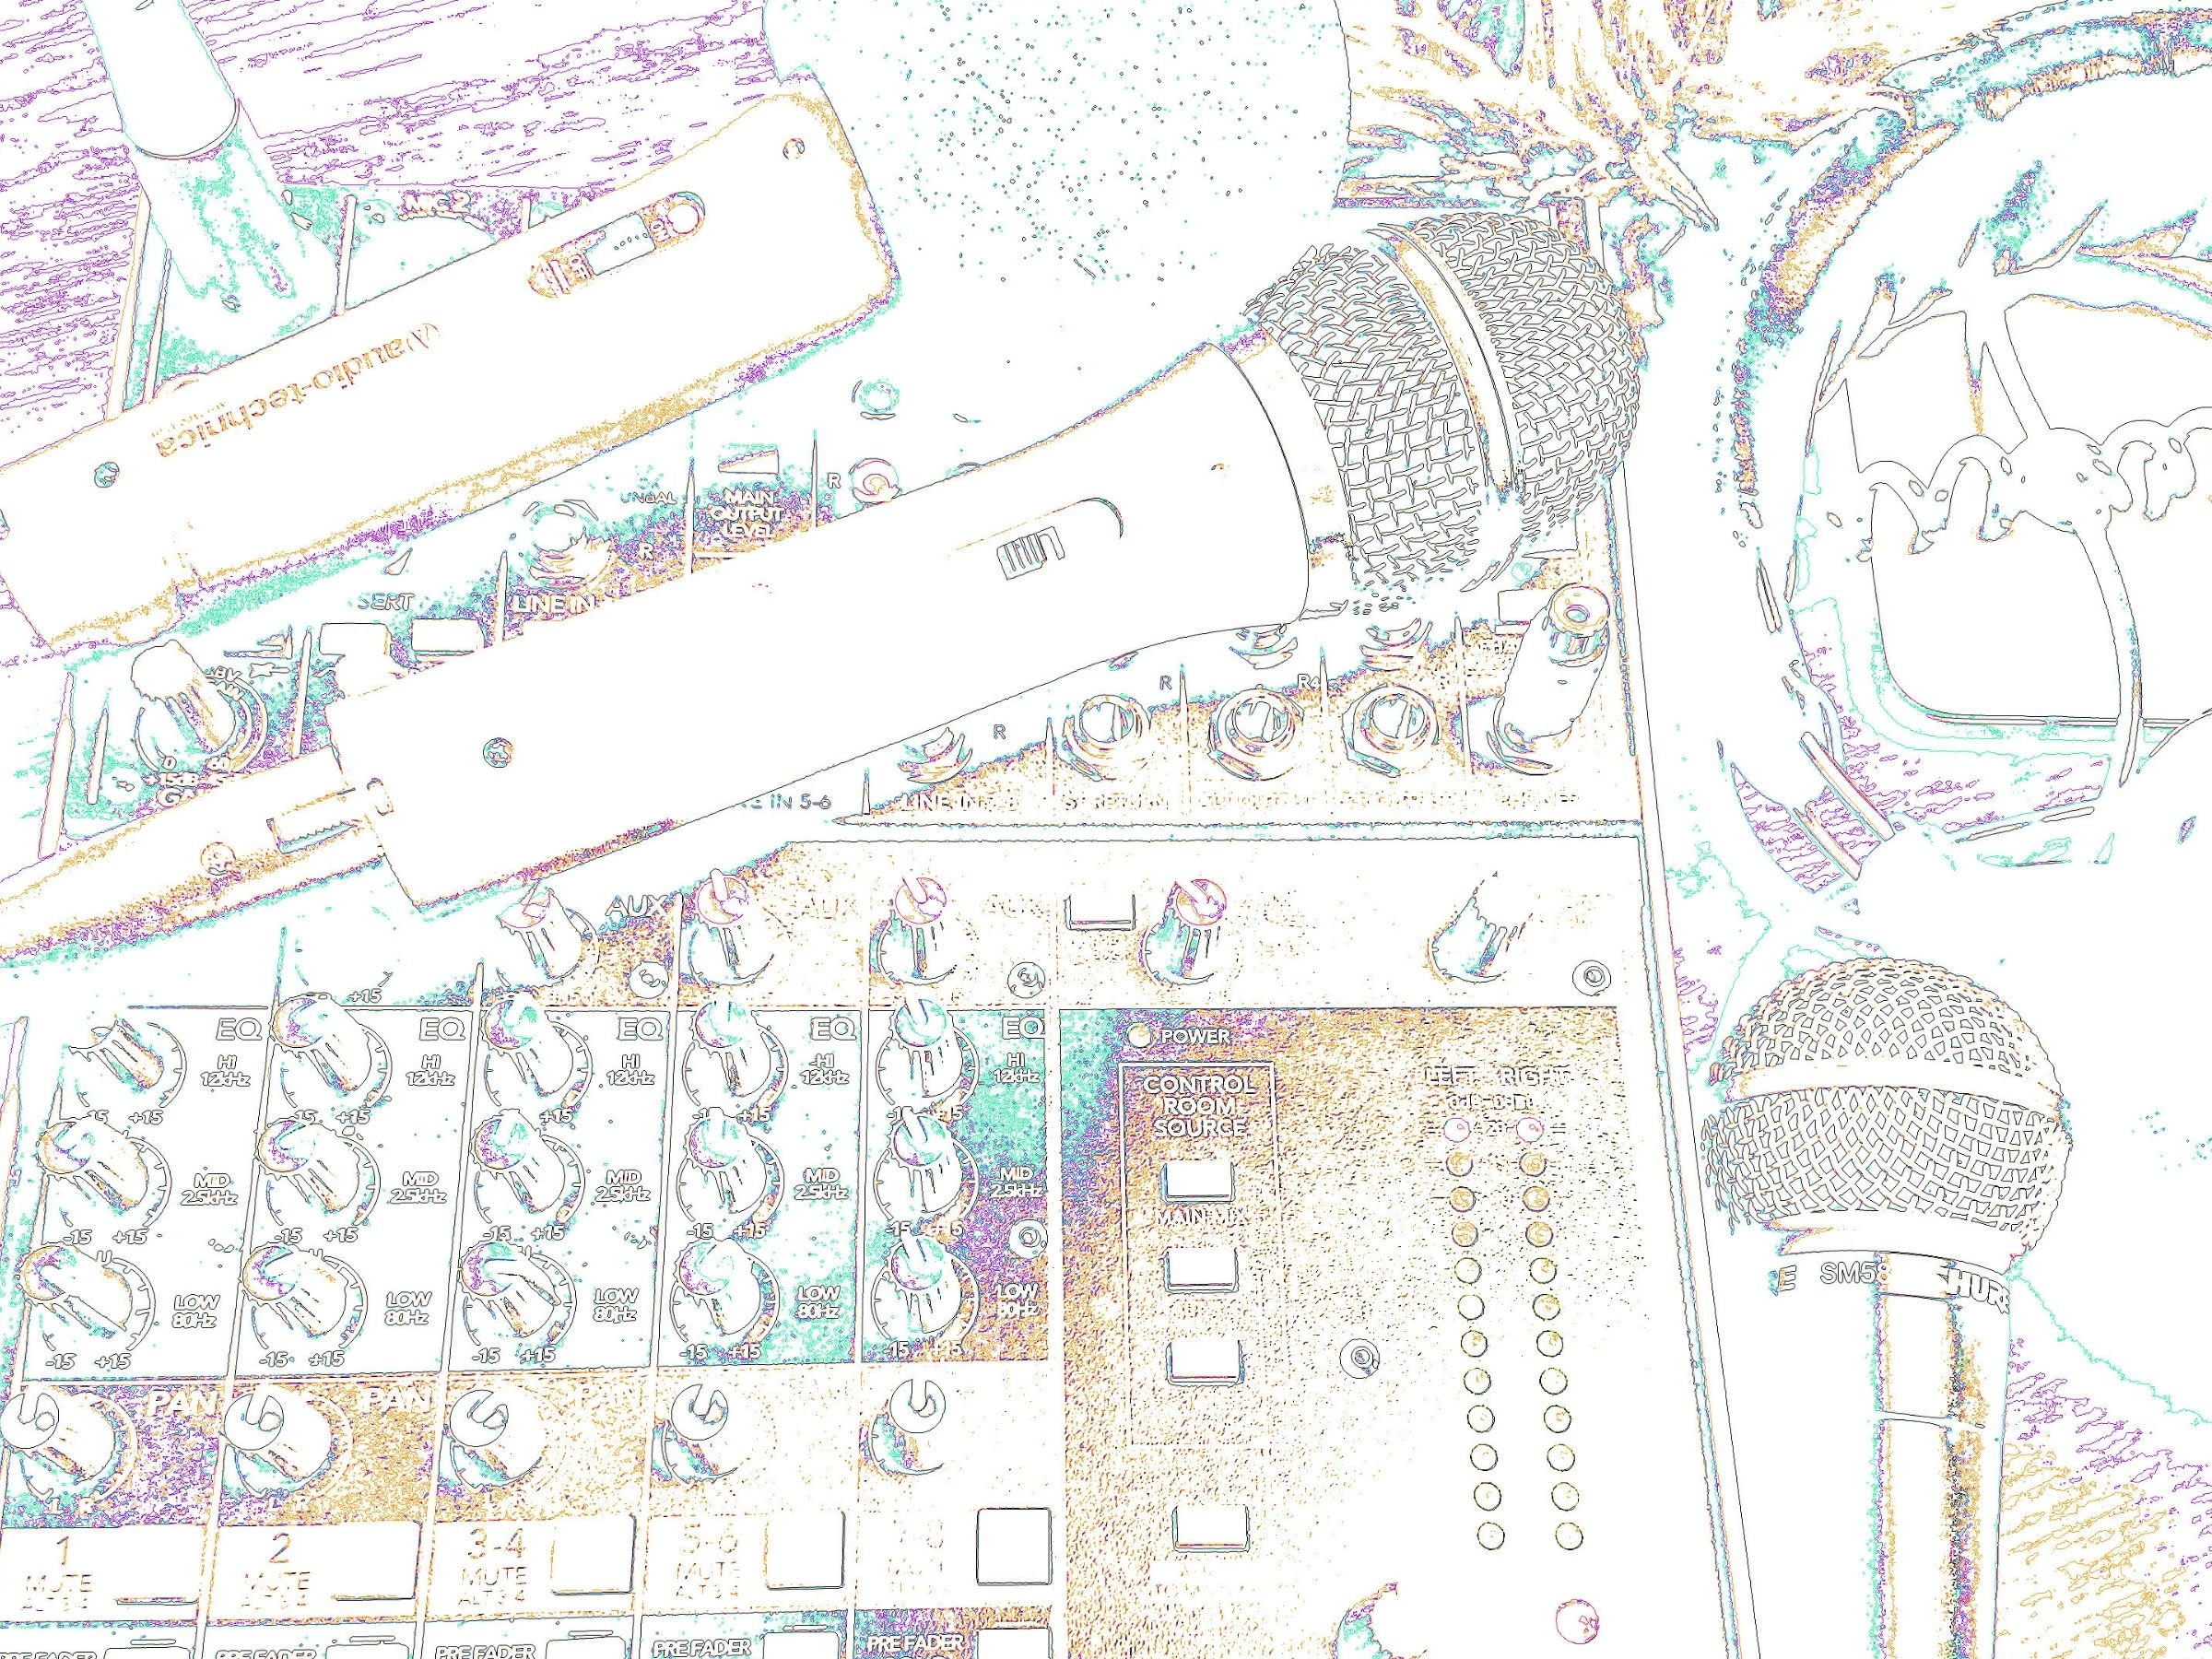 Audio mixer and two microphones image copyright Sheree Martin 2018